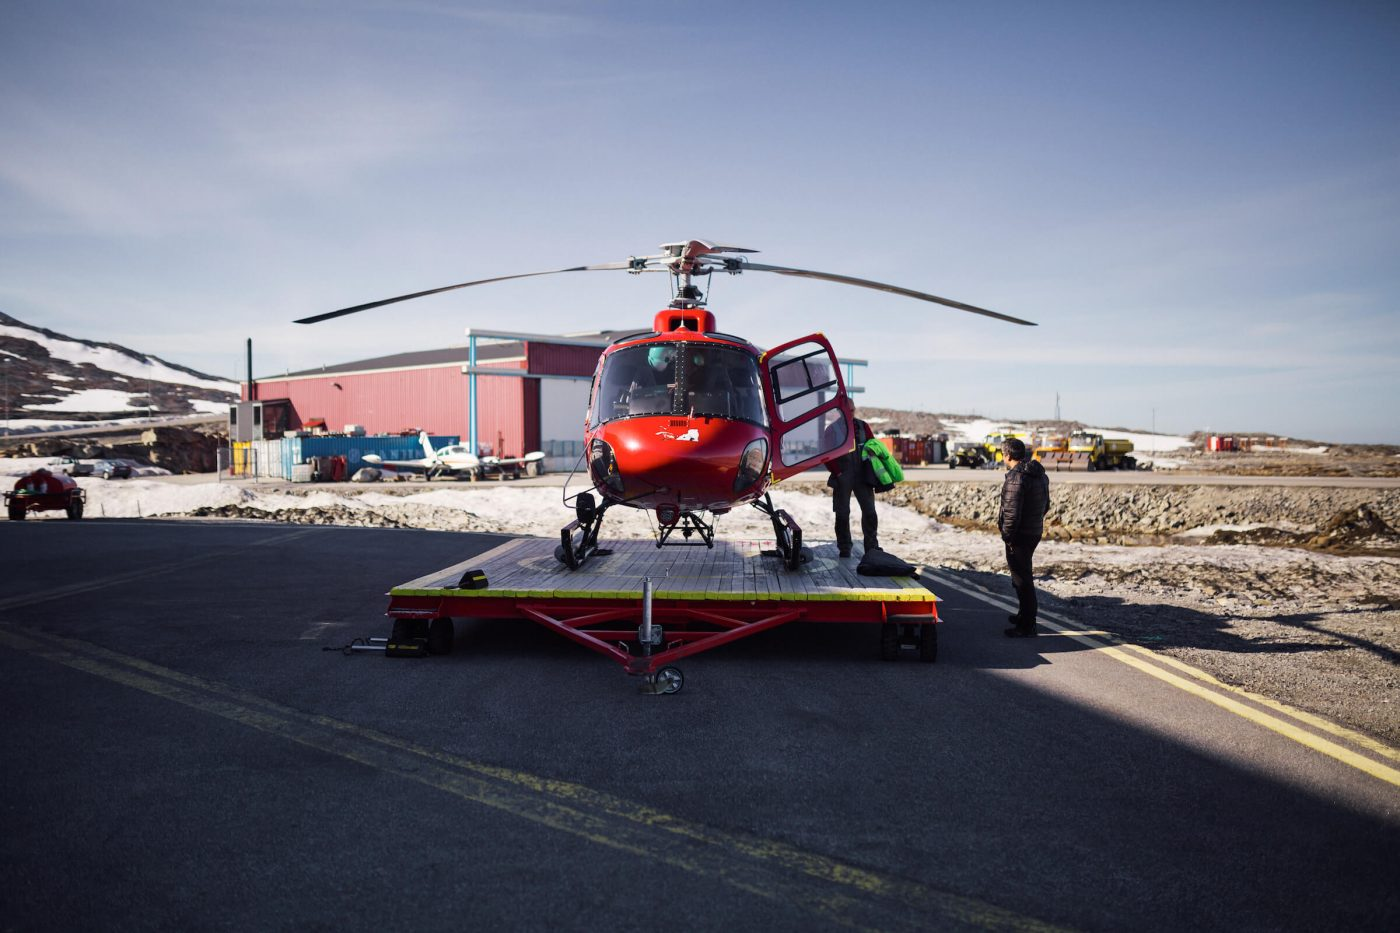 Air Greenland's helicopter gets ready to take off at Nuuk Airport. Photo by Filip Gielda, Visit Greenland